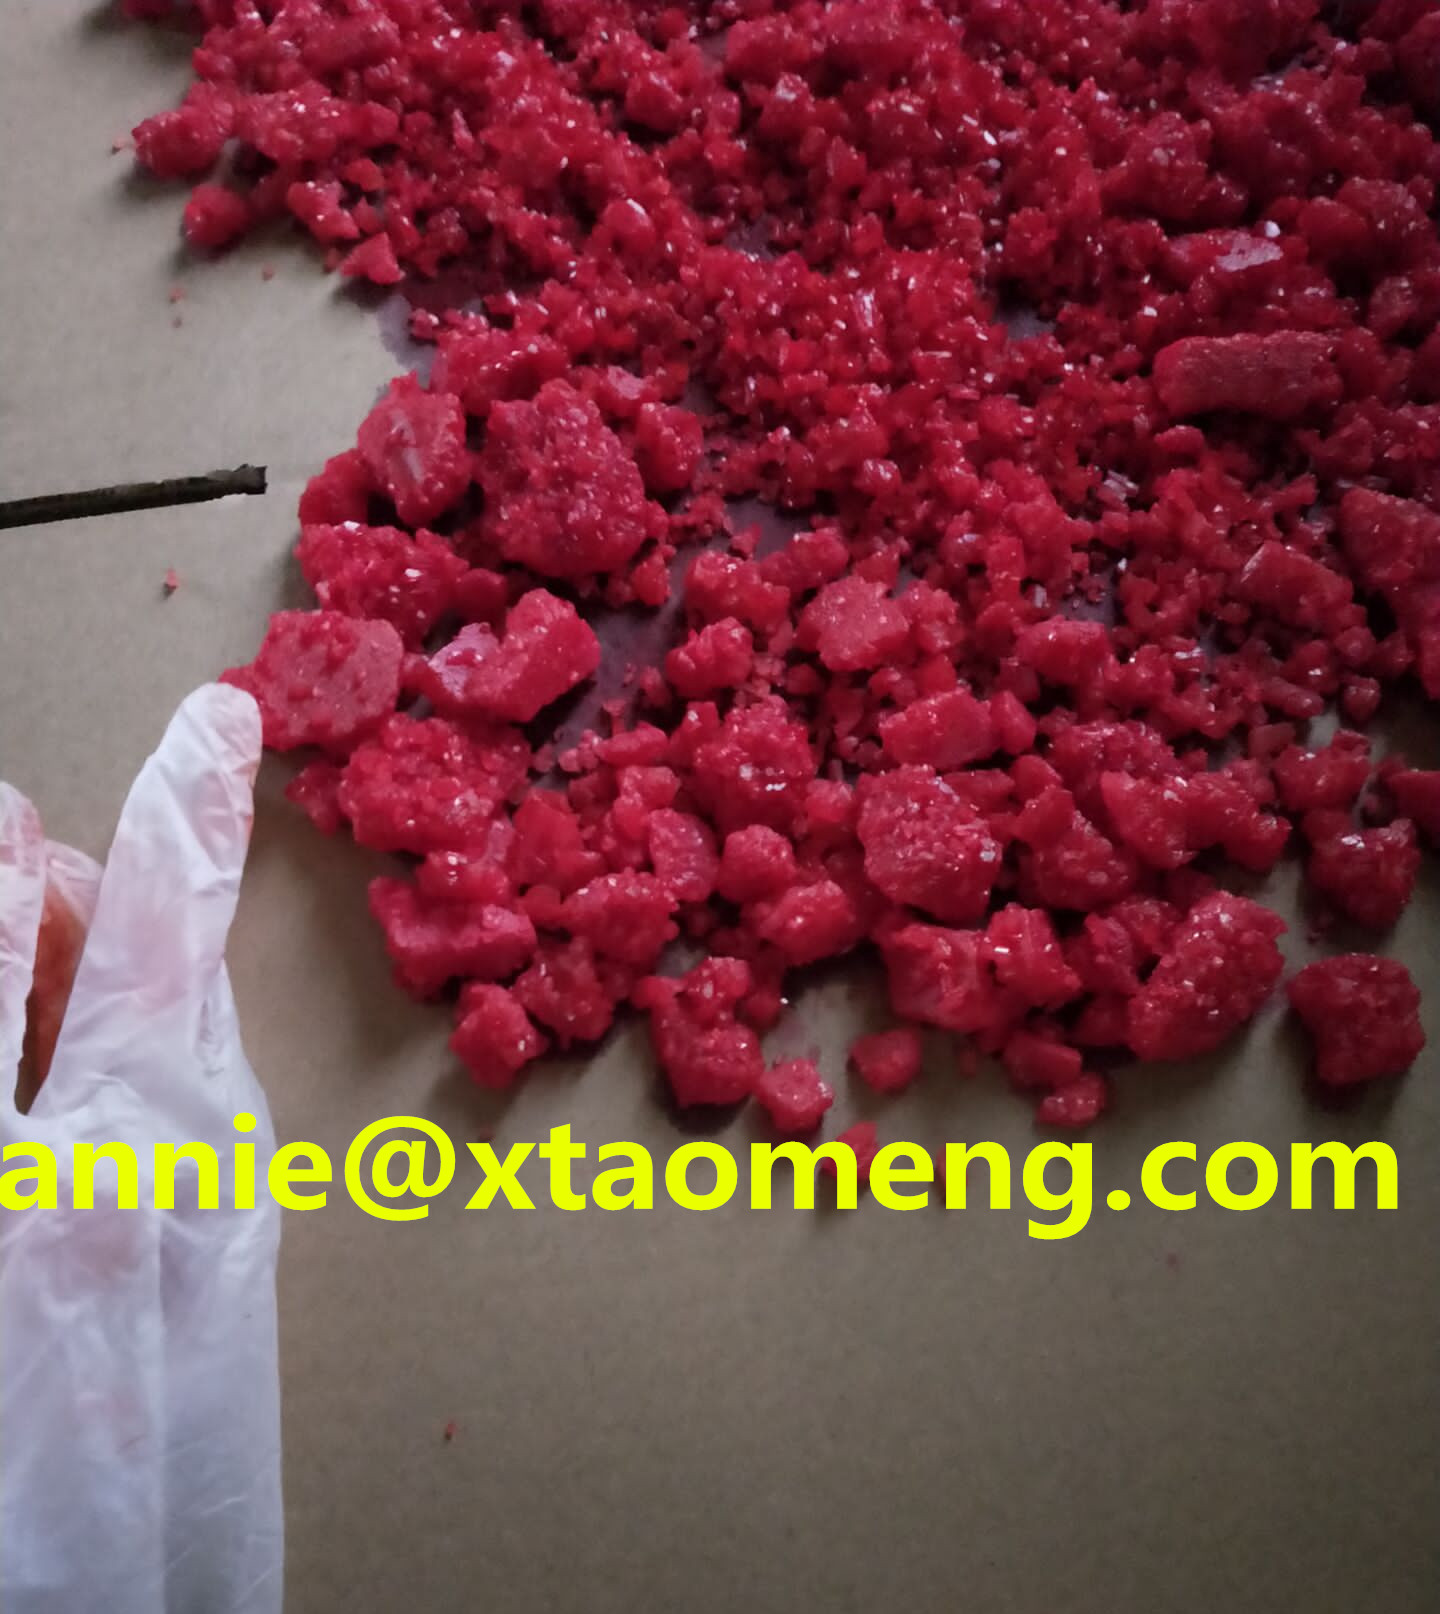 red color Eutylone BK-EBDP crystal (annie@xtaomeng.com)